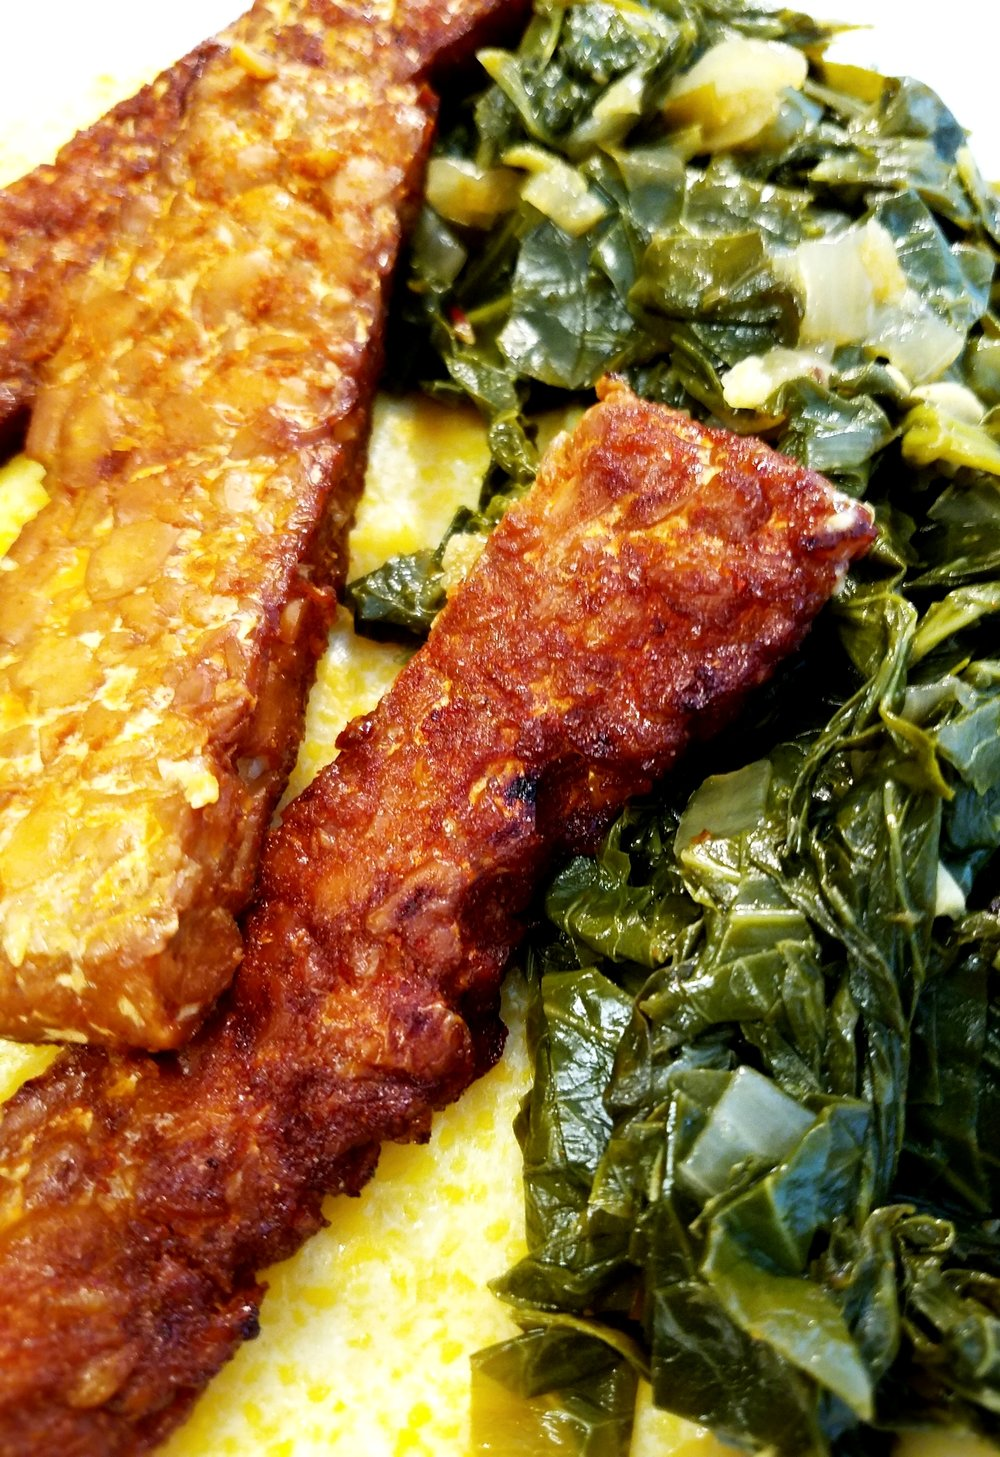 Vegan Cheese Grits with Tempeh Bacon and Greens